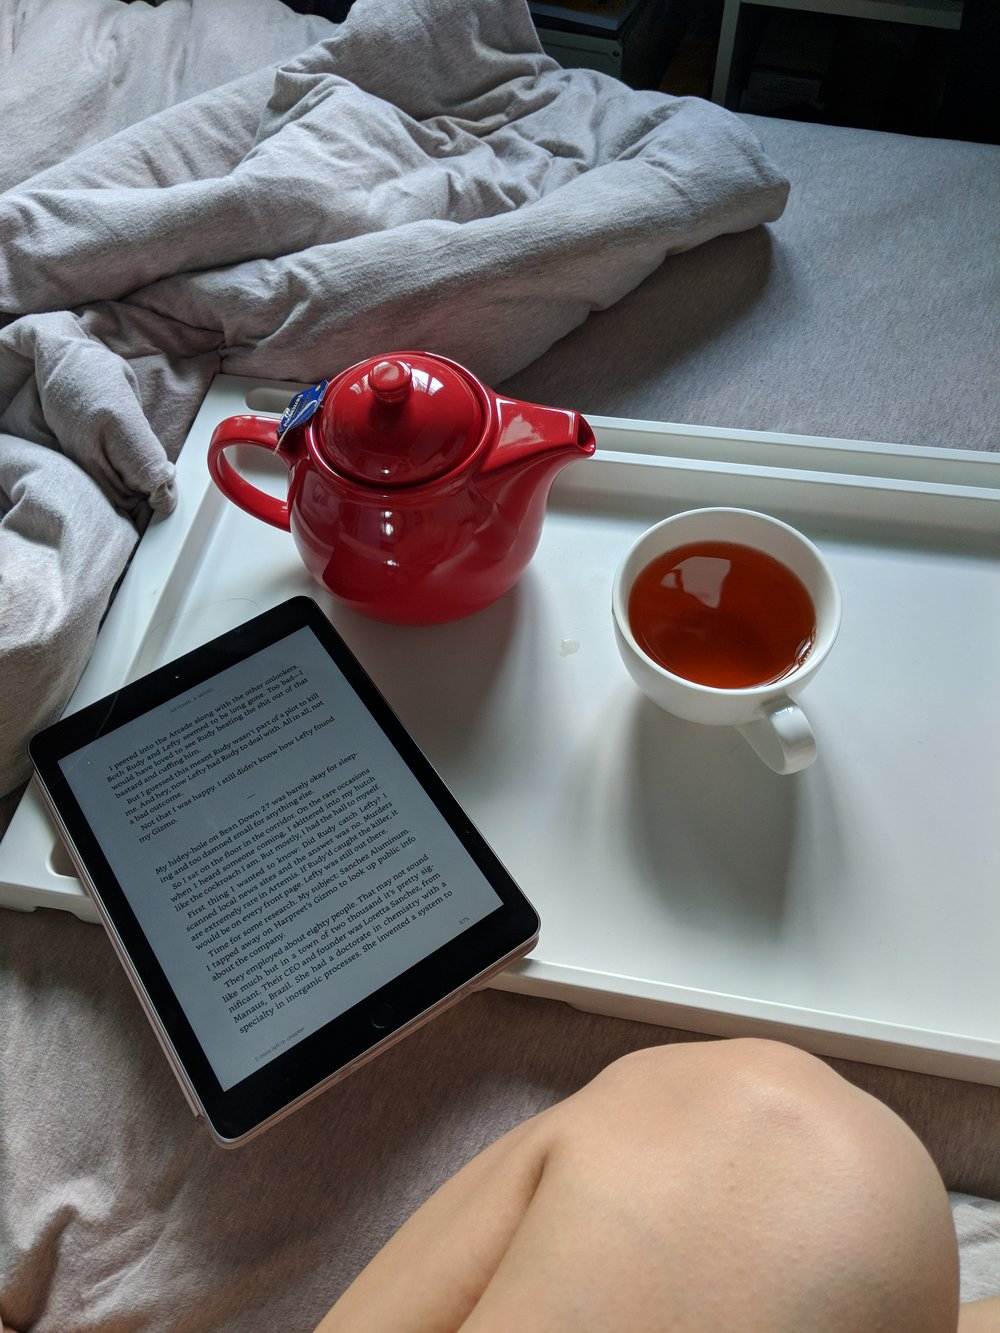 Sunday afternoons with my Kindle and tea